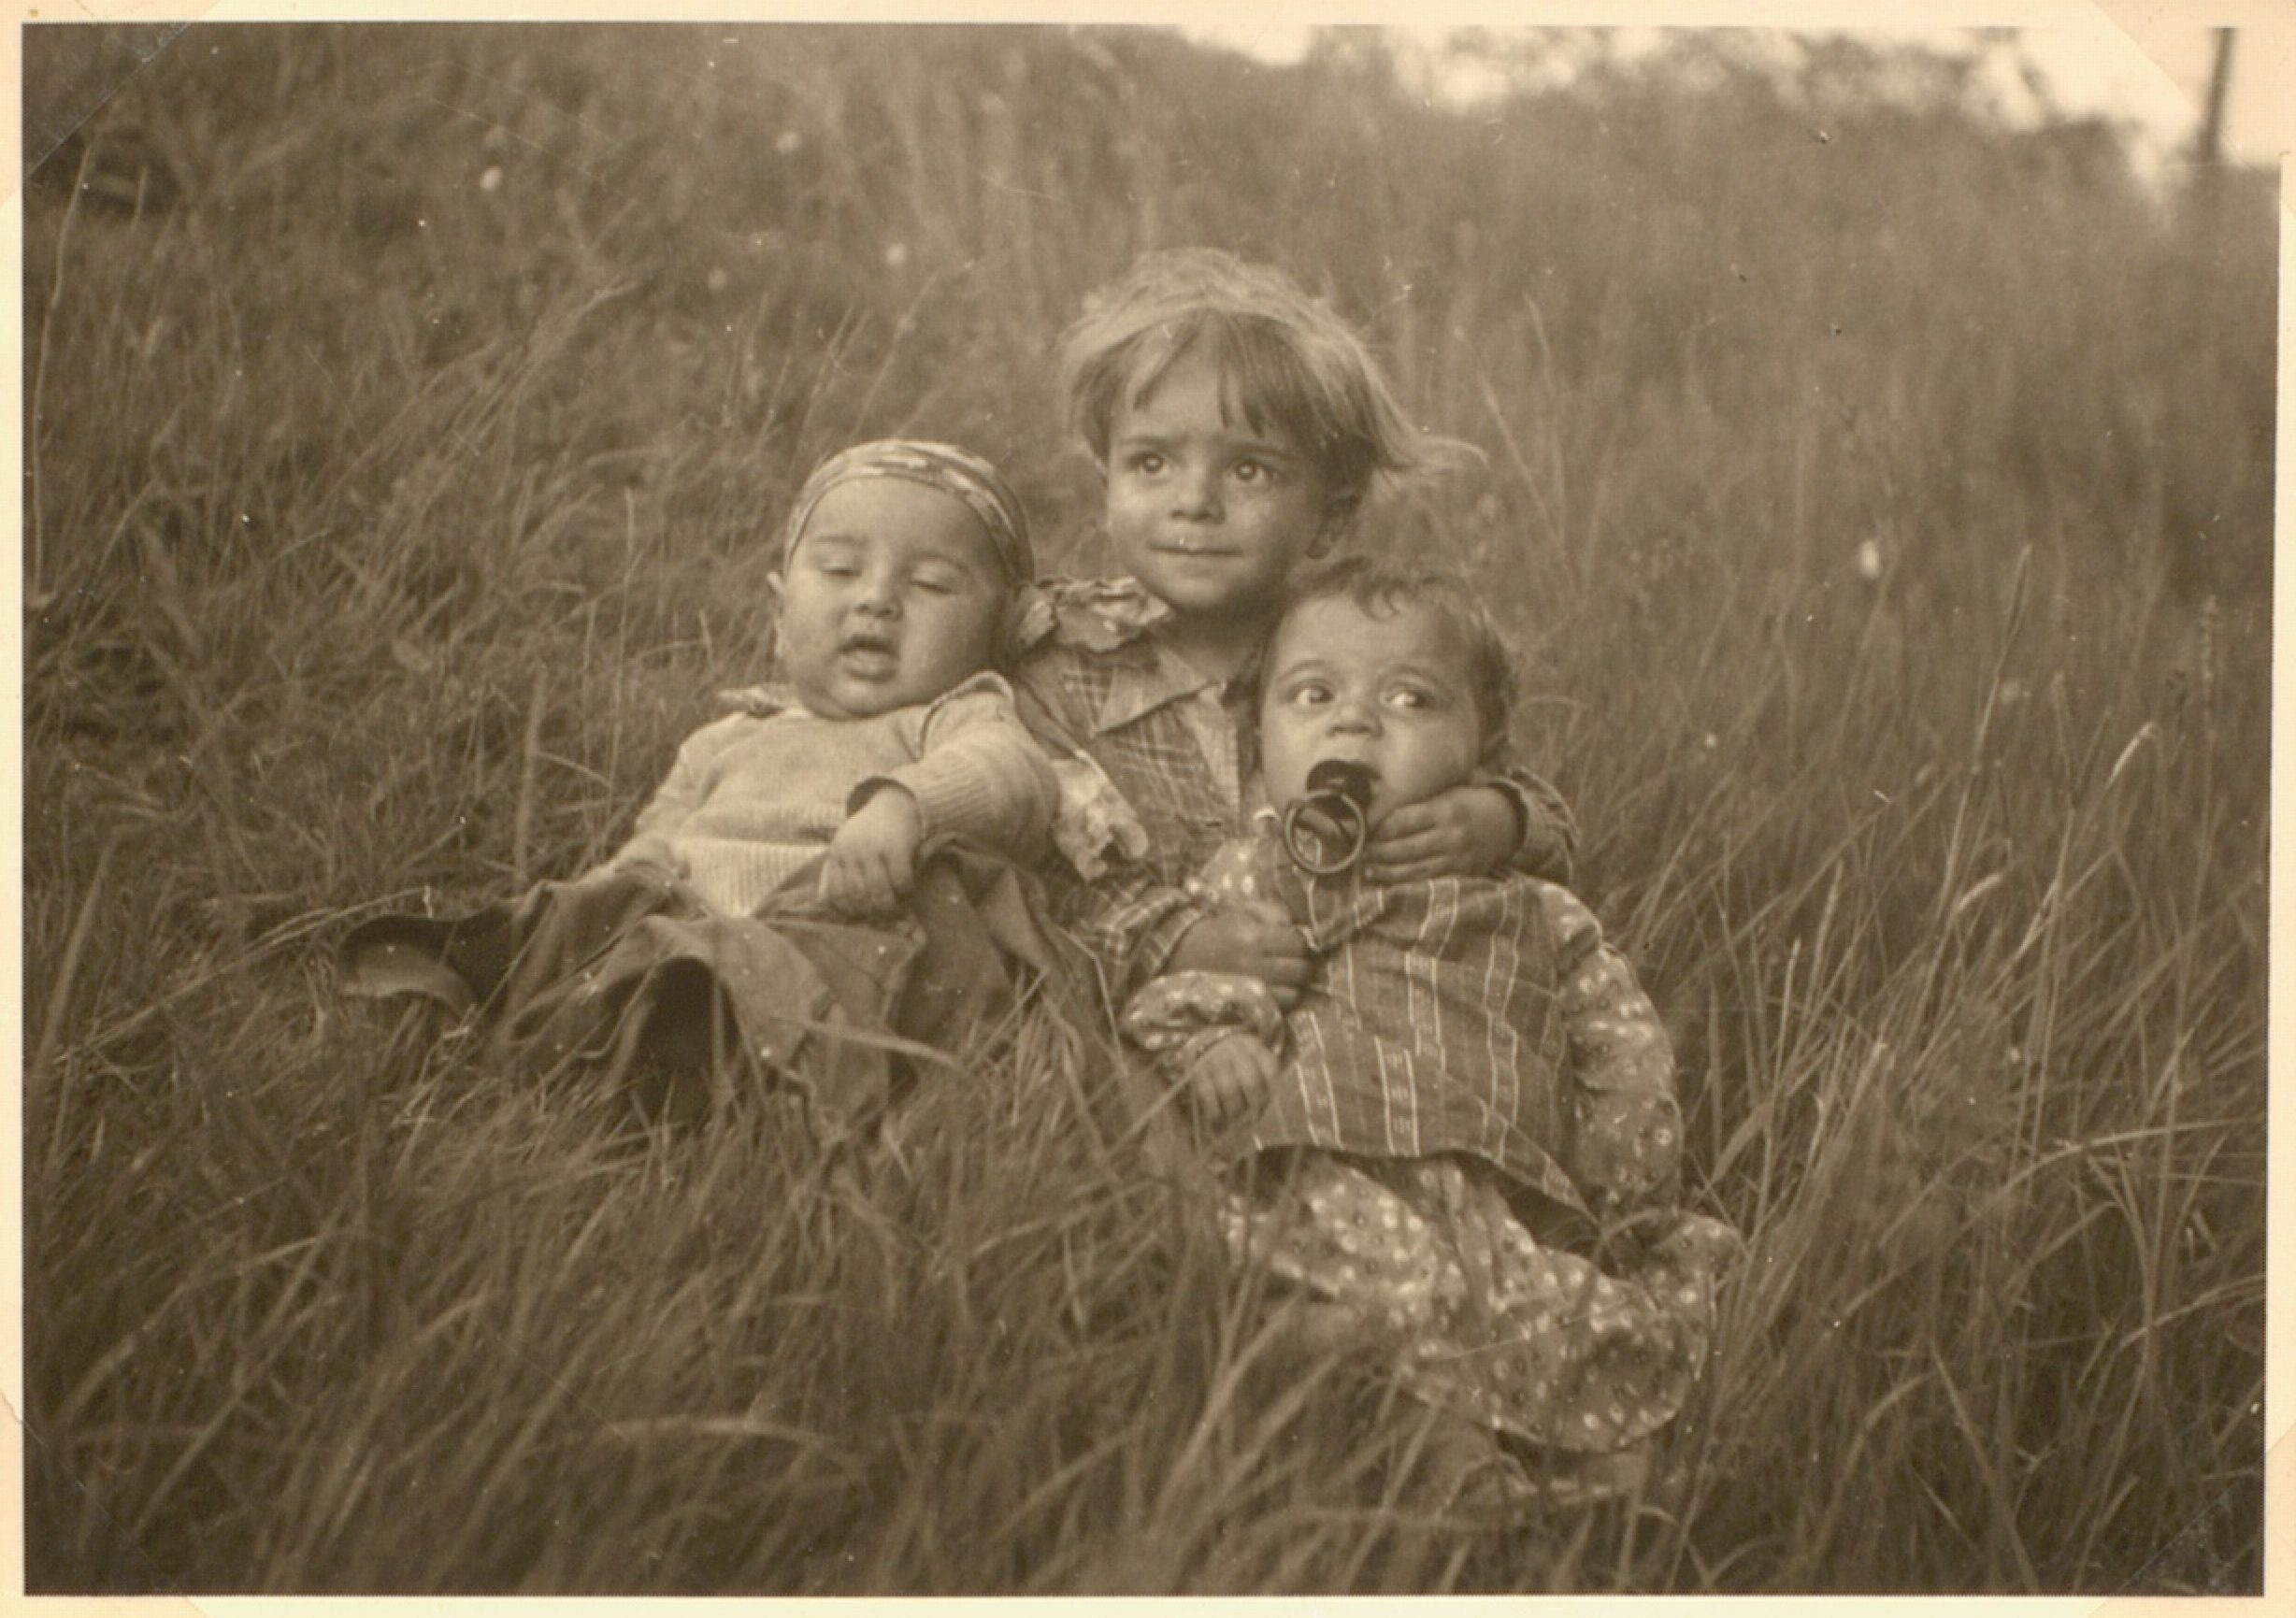 August, a Sinti boy (center), and relatives in Germany. August died in Auschwitz concentration camp, as almost certainly did the other children.